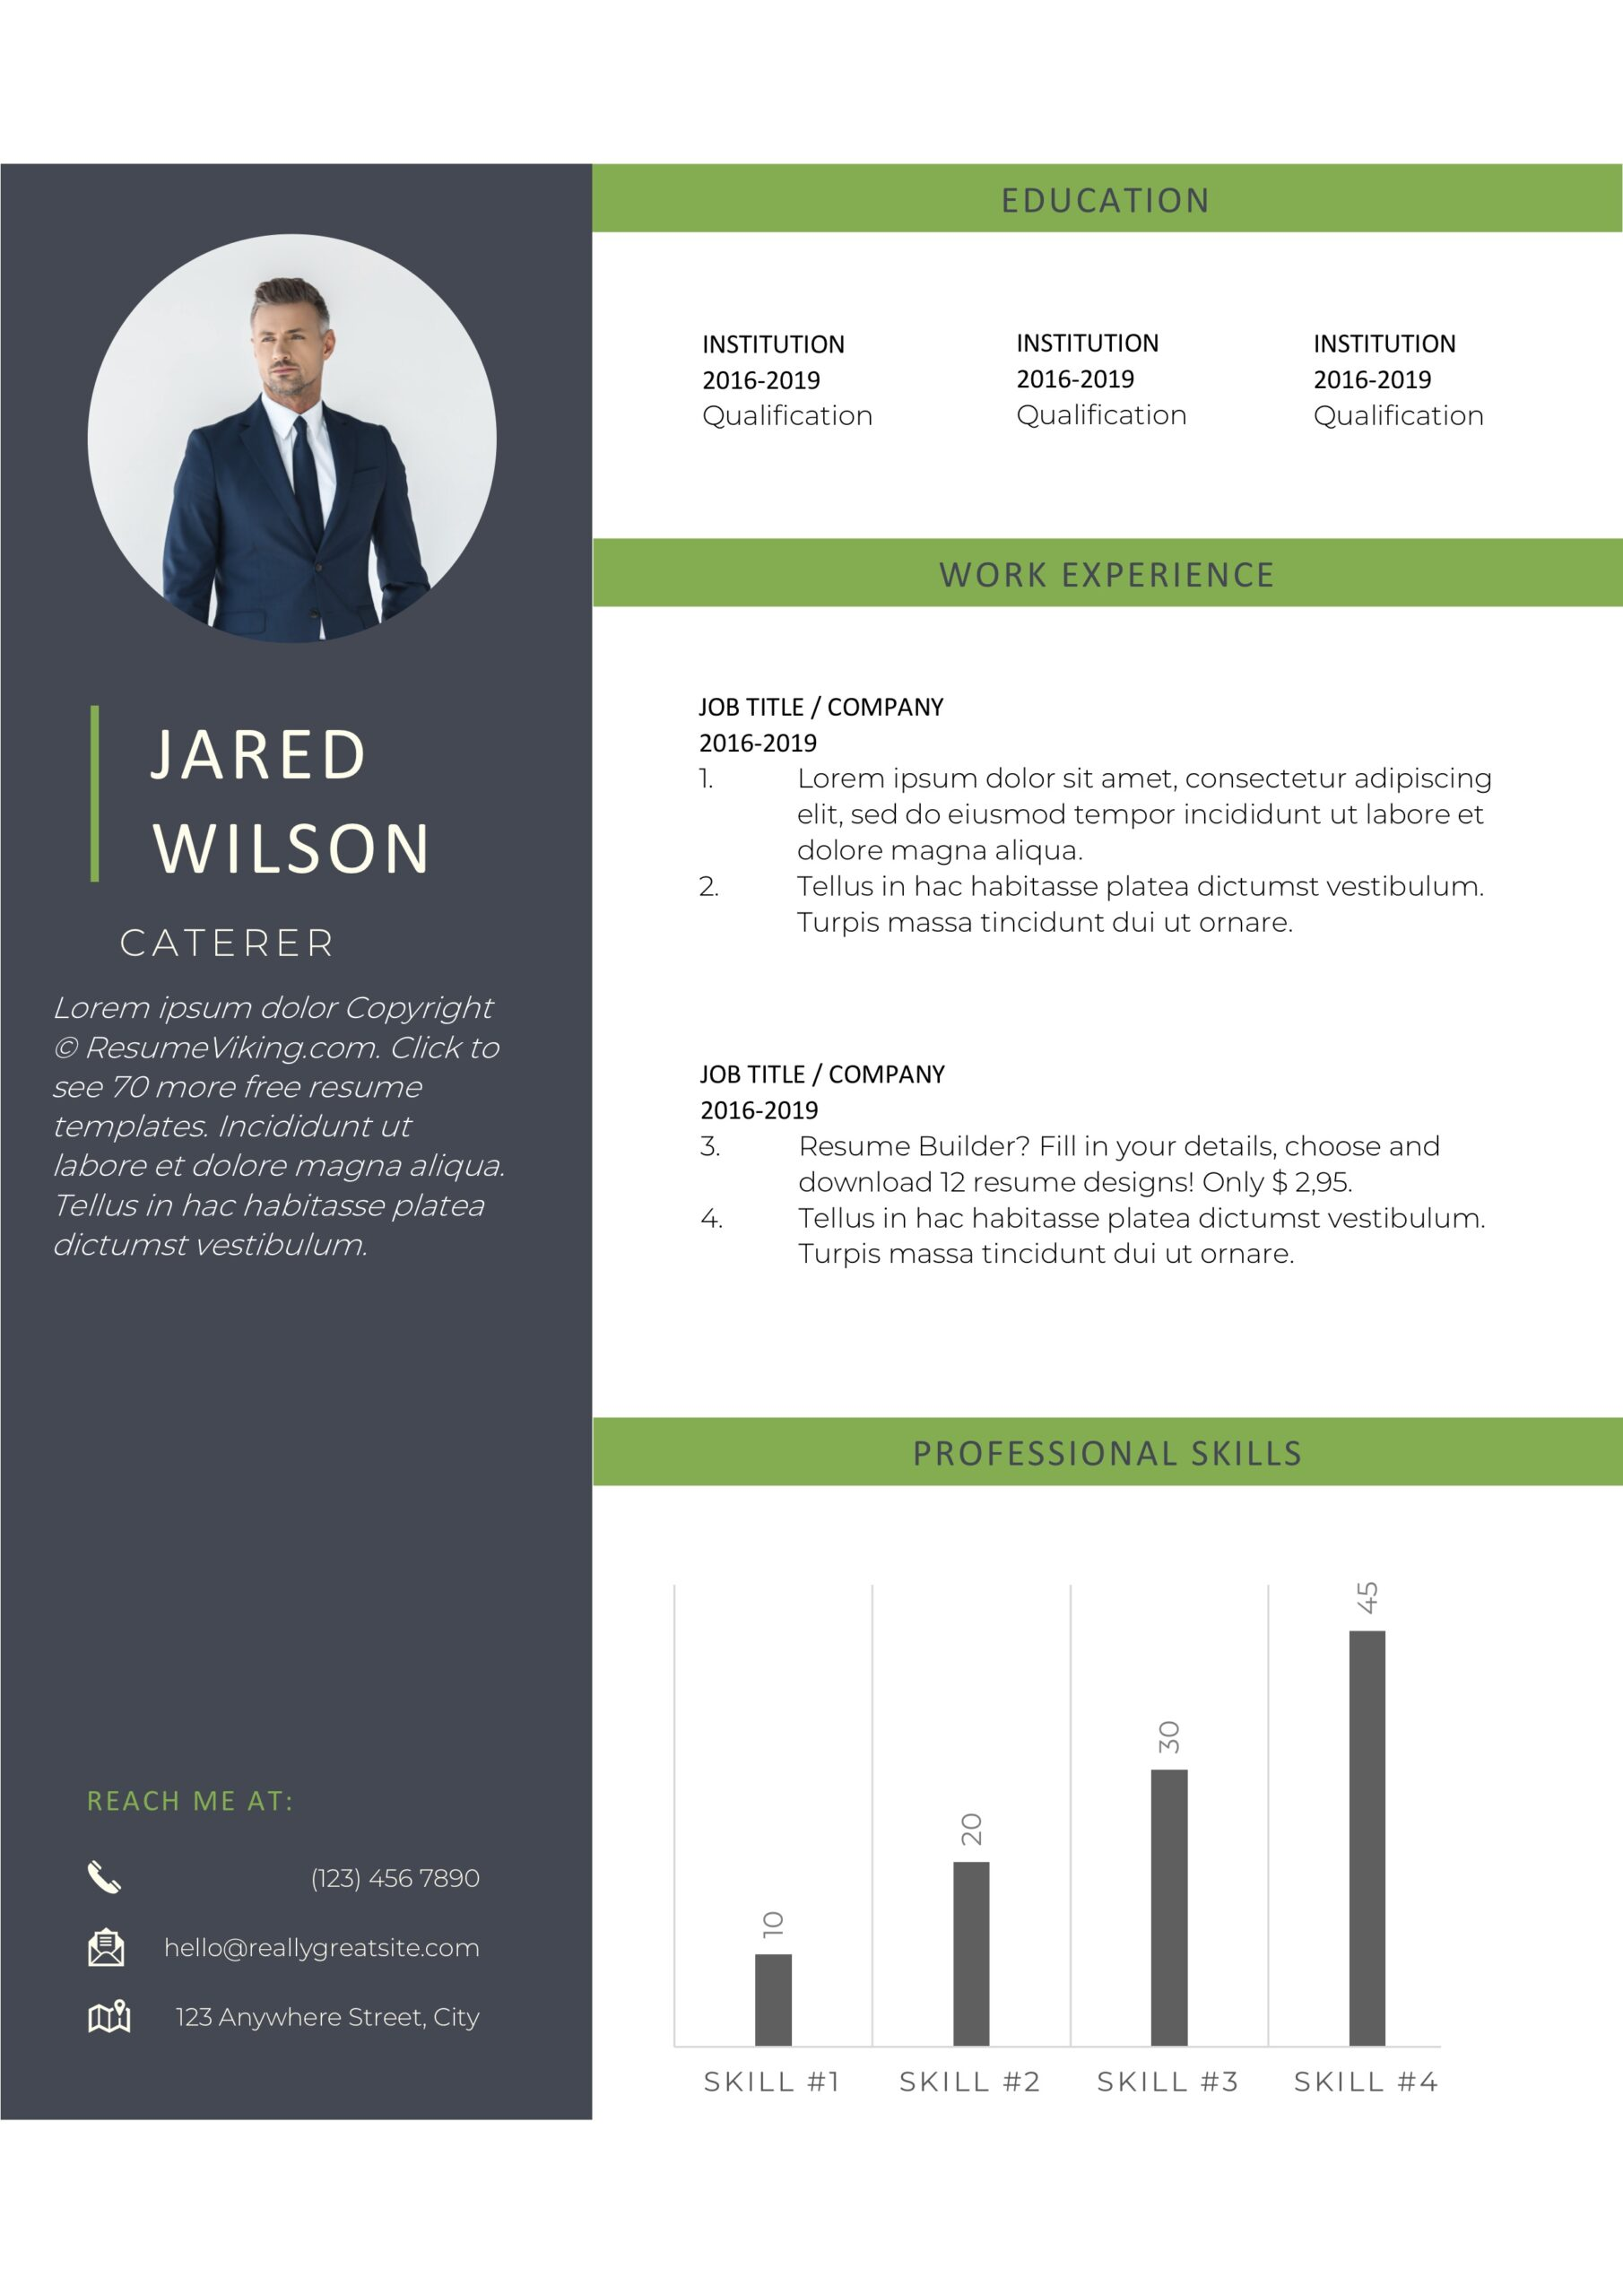 resume templates pdf word free downloads and guides create grace resumeviking template Resume Create Resume Pdf Free